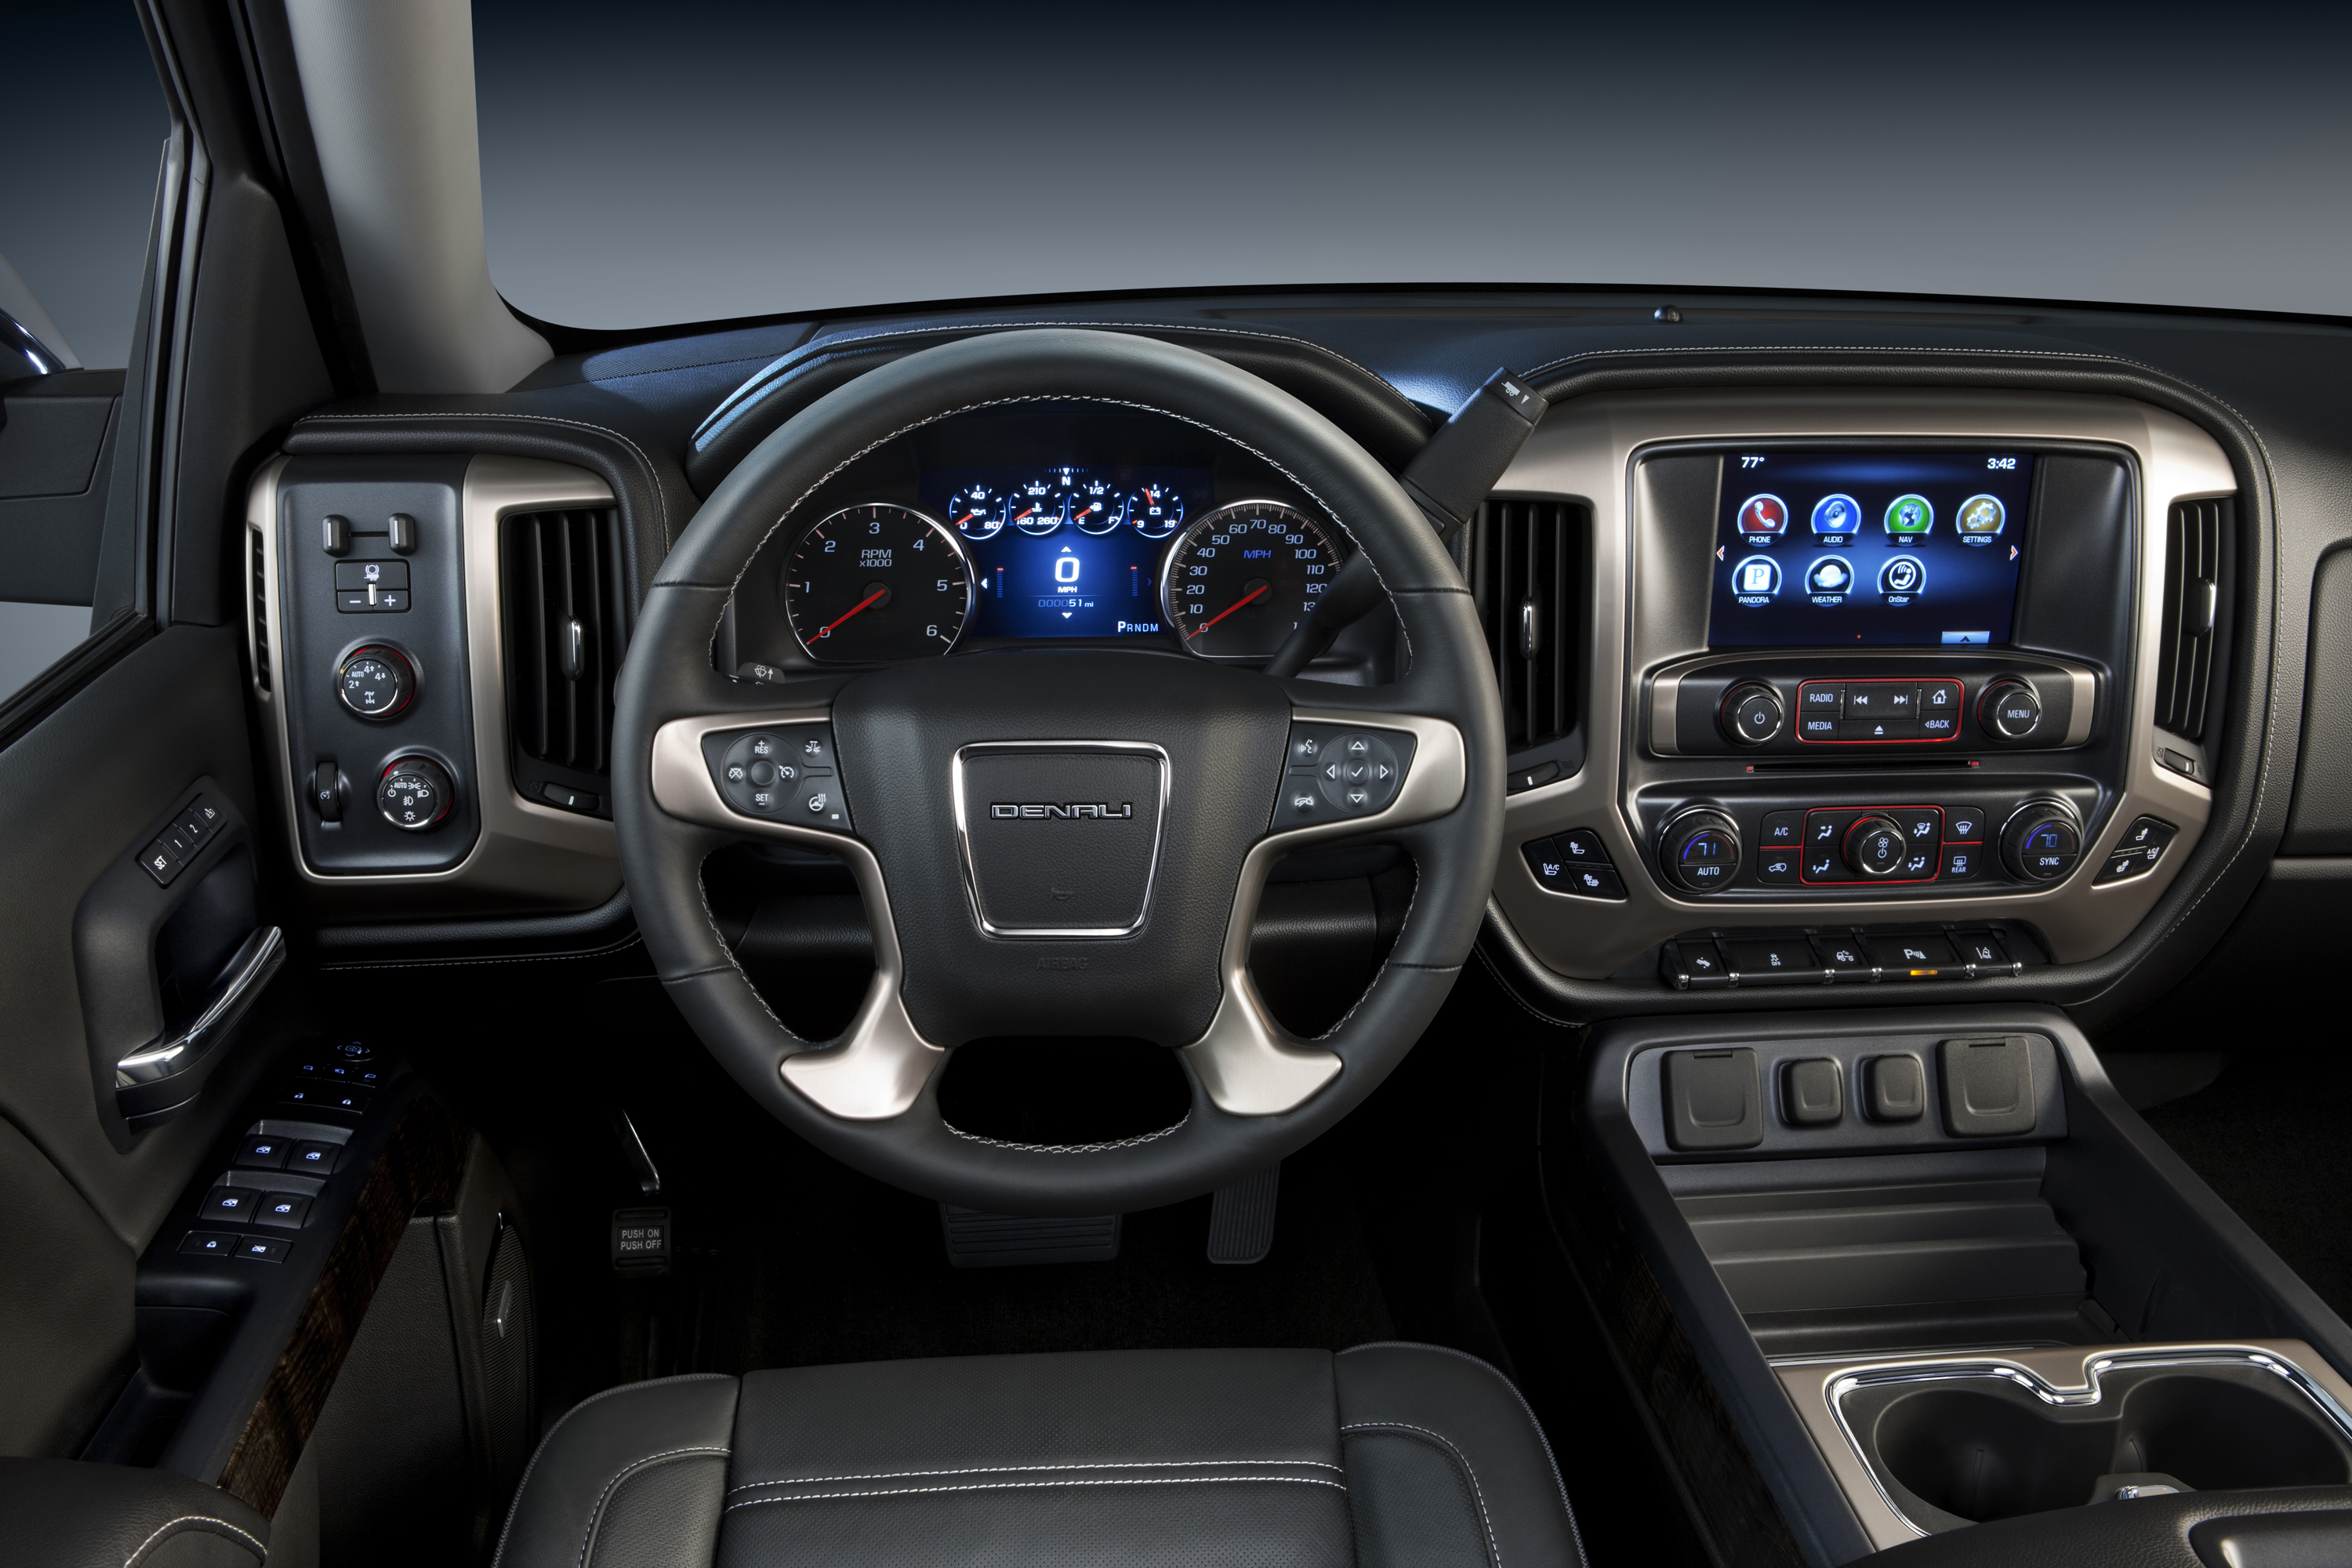 denali rs videos sierra video the bed gmc reinvents roadshow